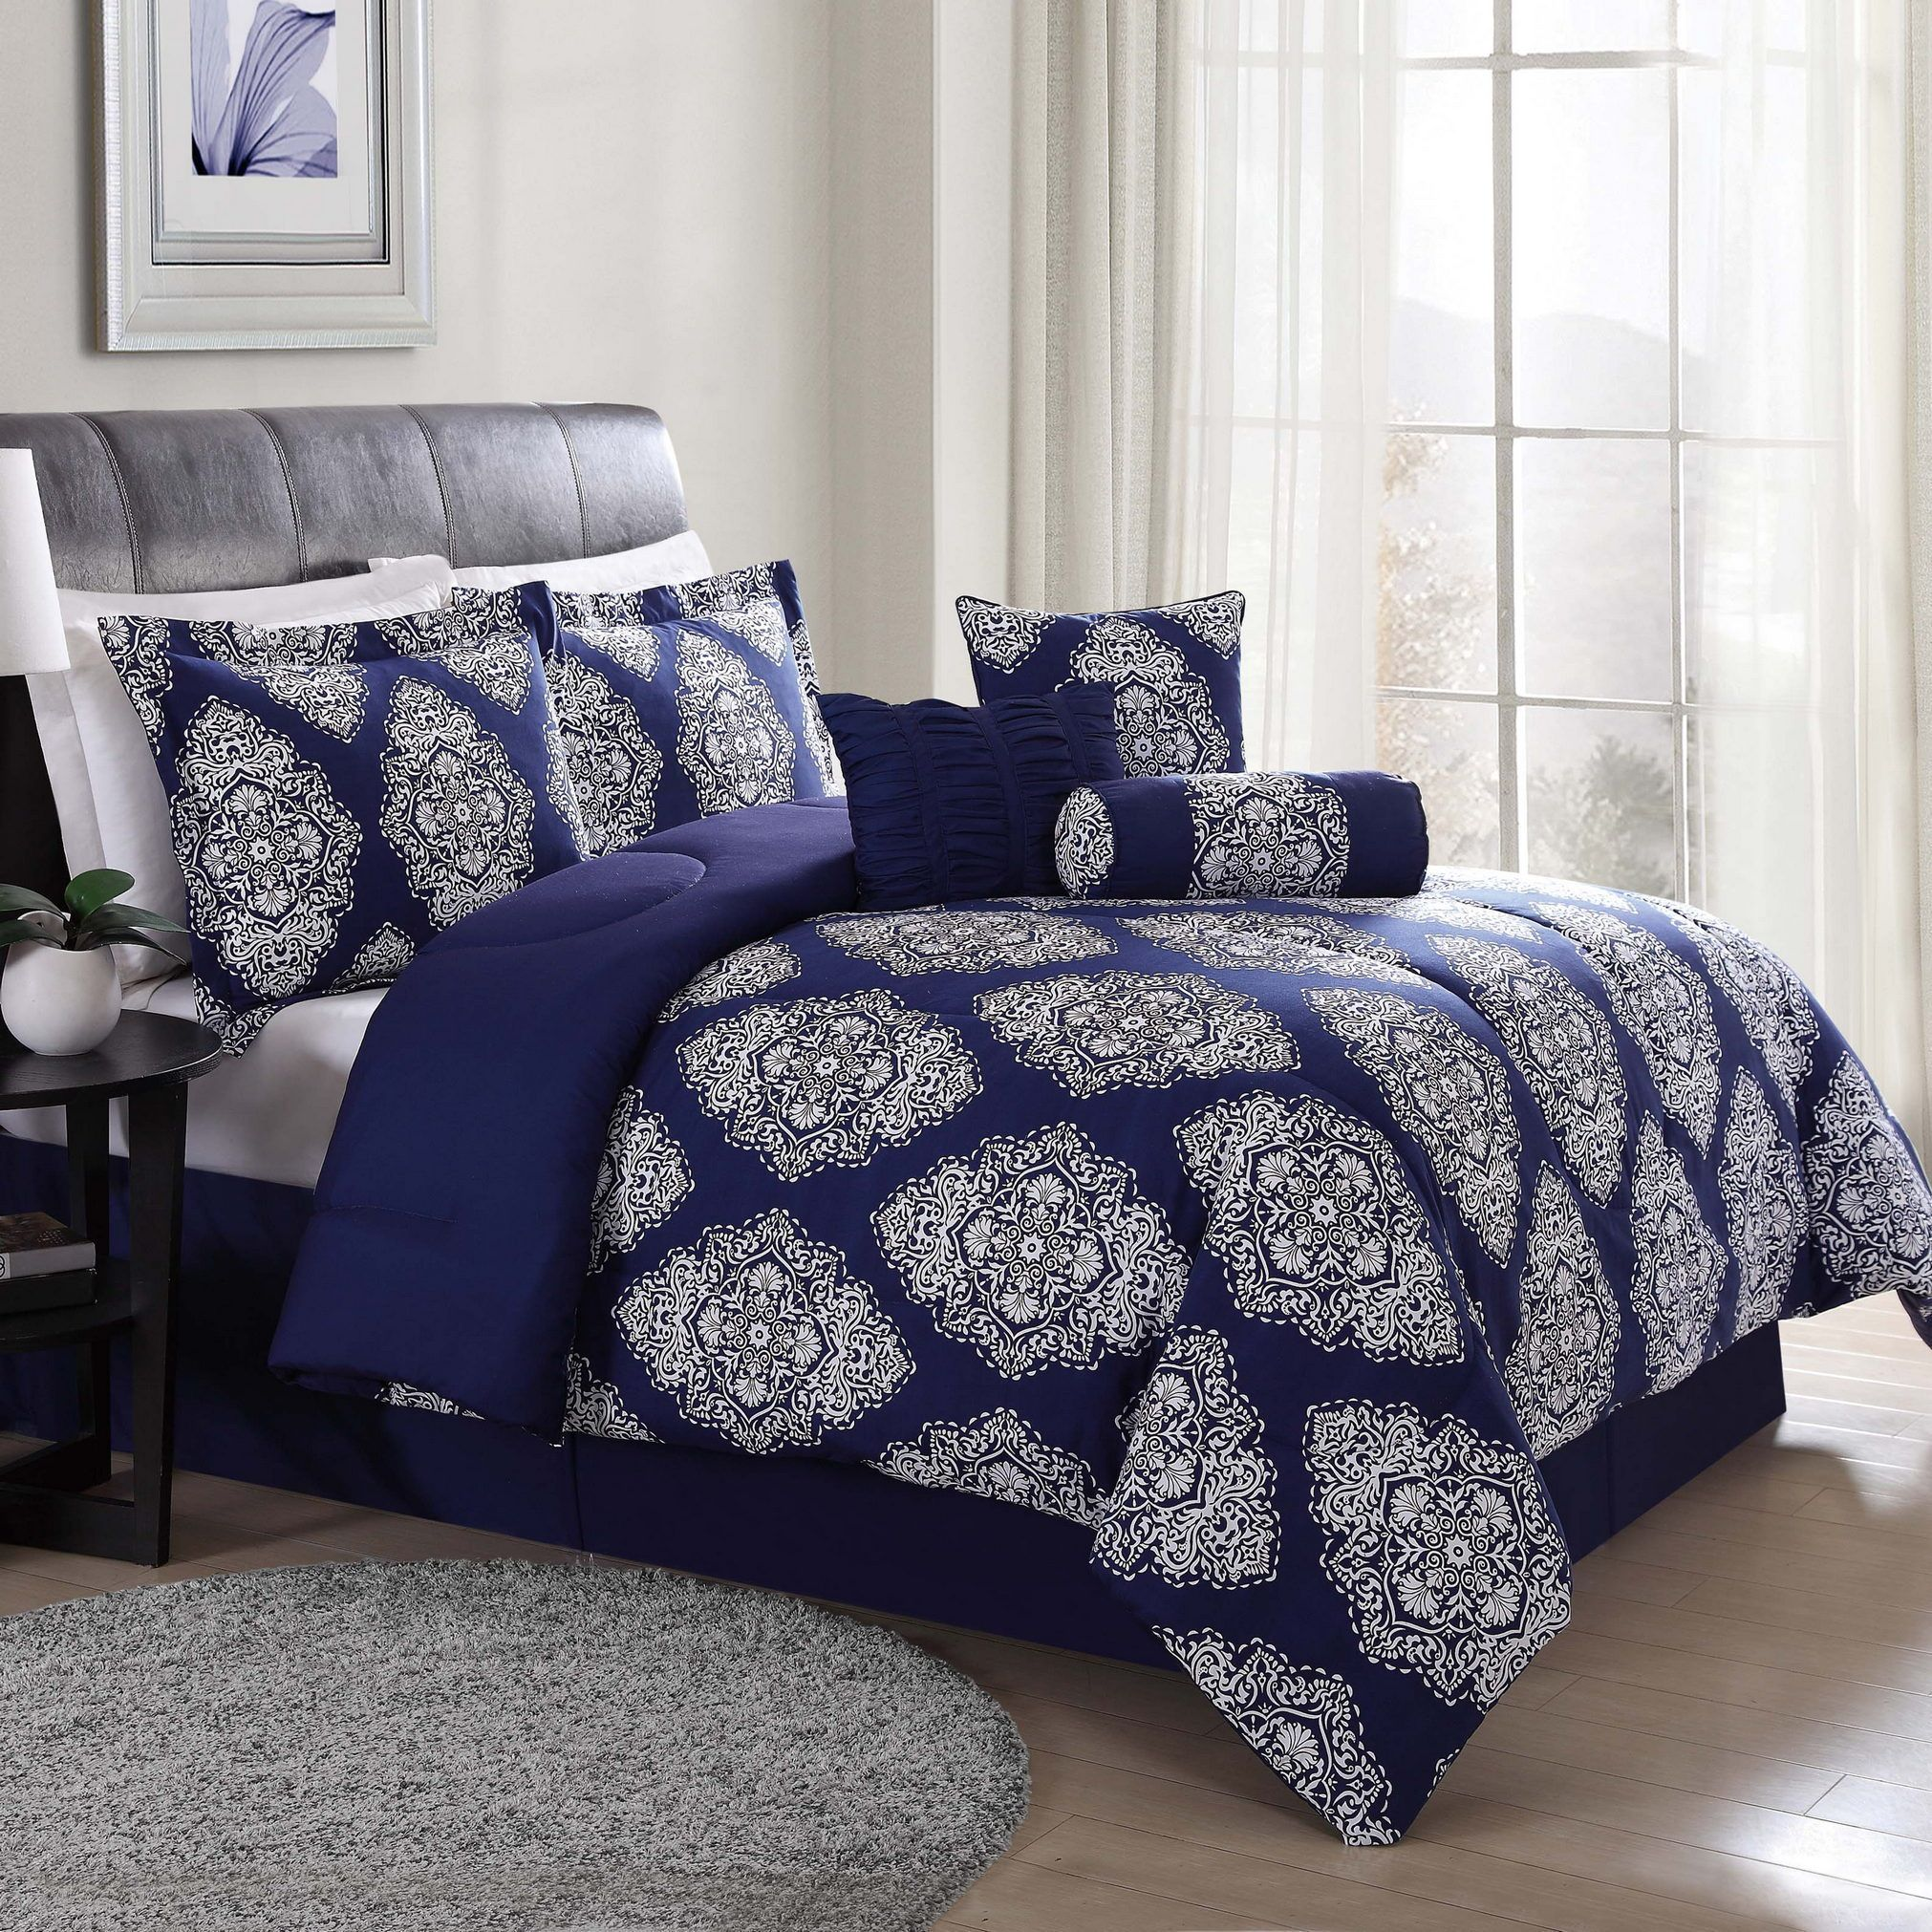 bedding bedspread cal king duvet measurements size california set sizes awesome sheet twin cover comforter